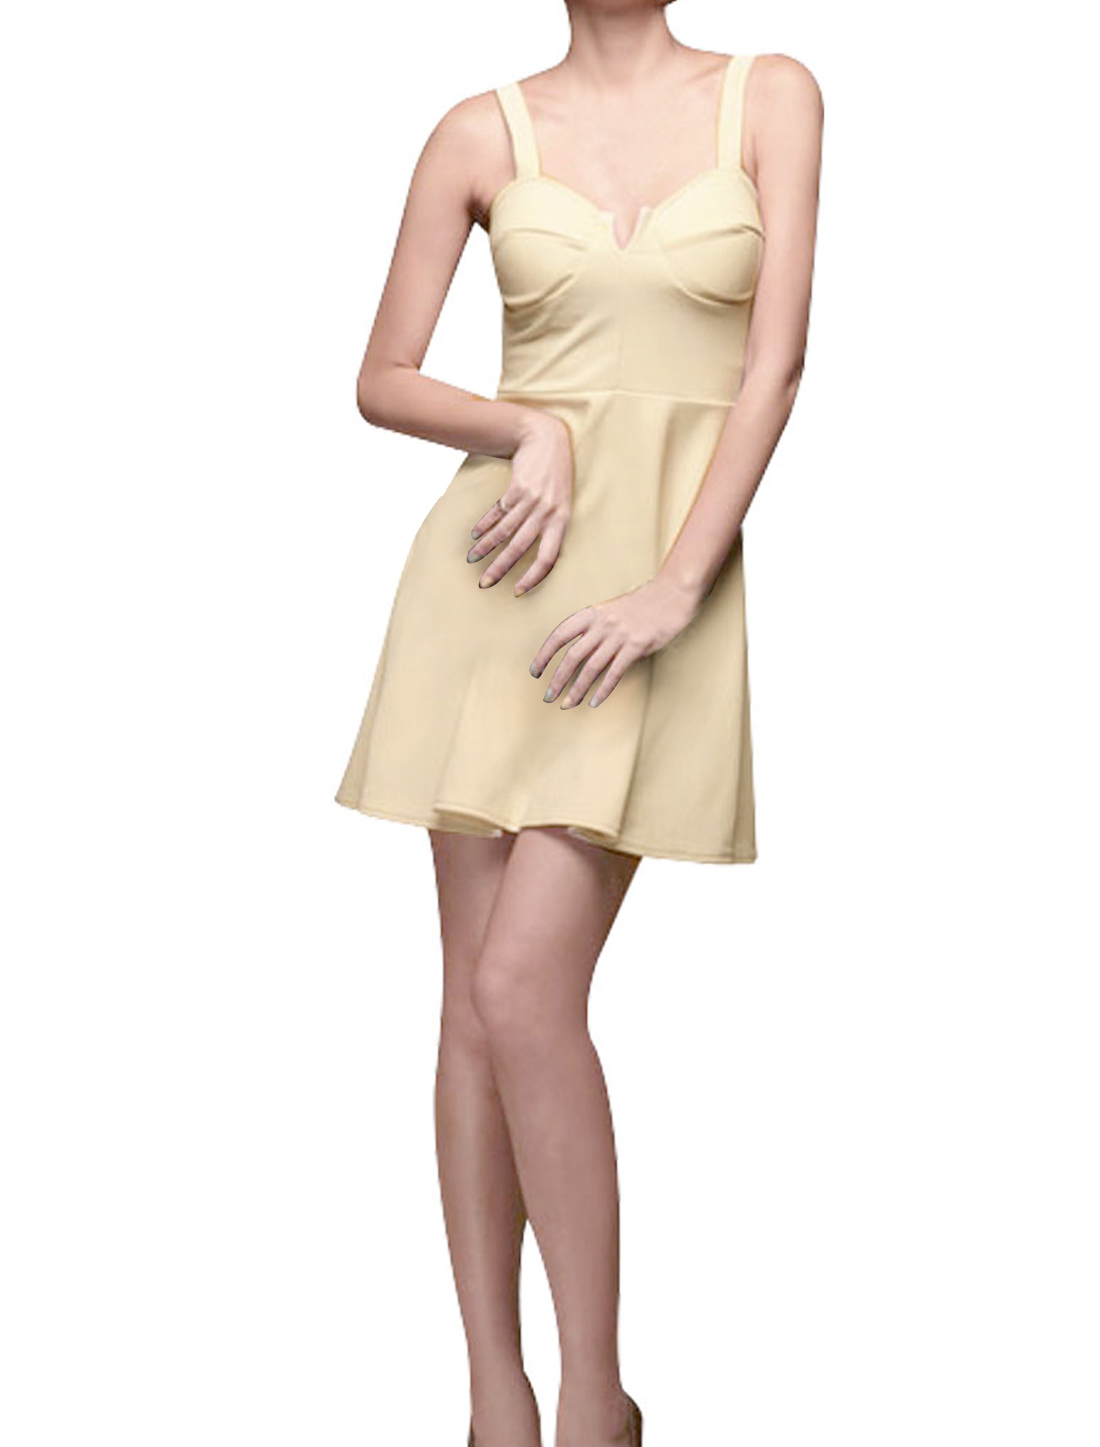 Ladies Sheevesless Sweetheart Neckline Mini A Line Dress Beige XS